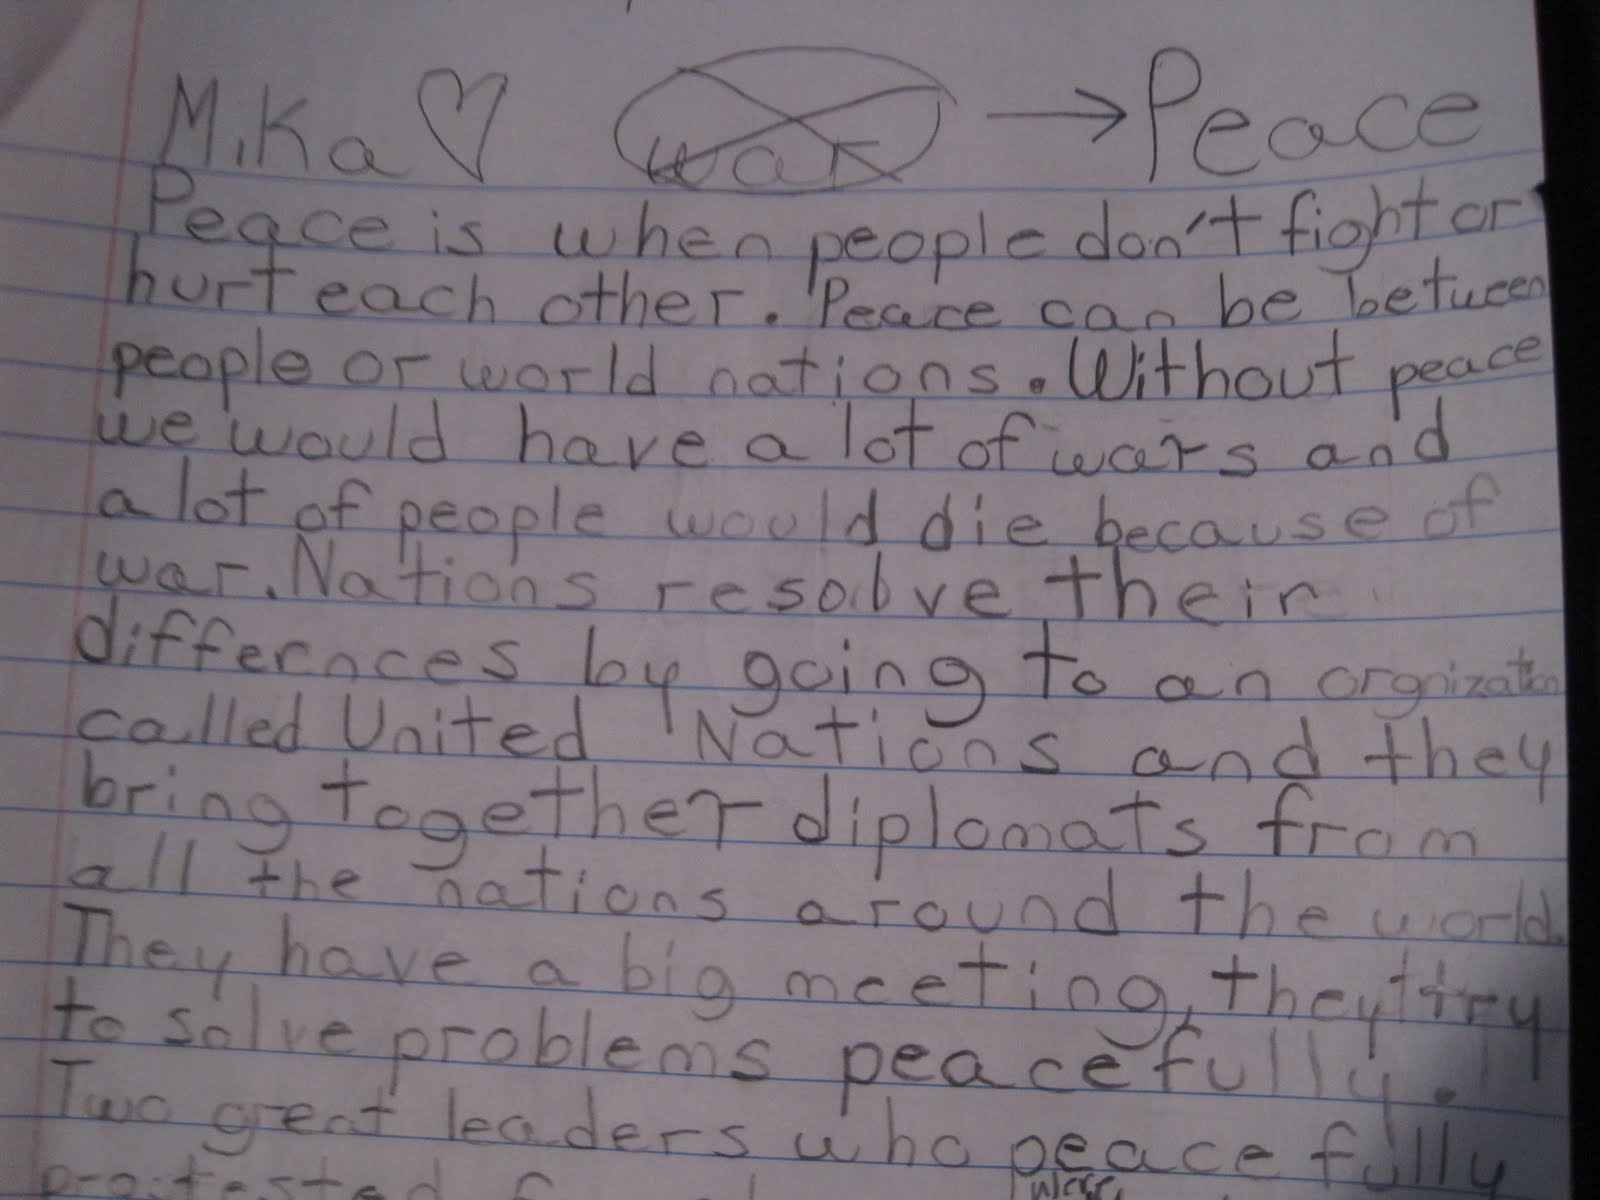 the princess narratives mika wrote this essay for a school essay writing contest about the meaning of peace